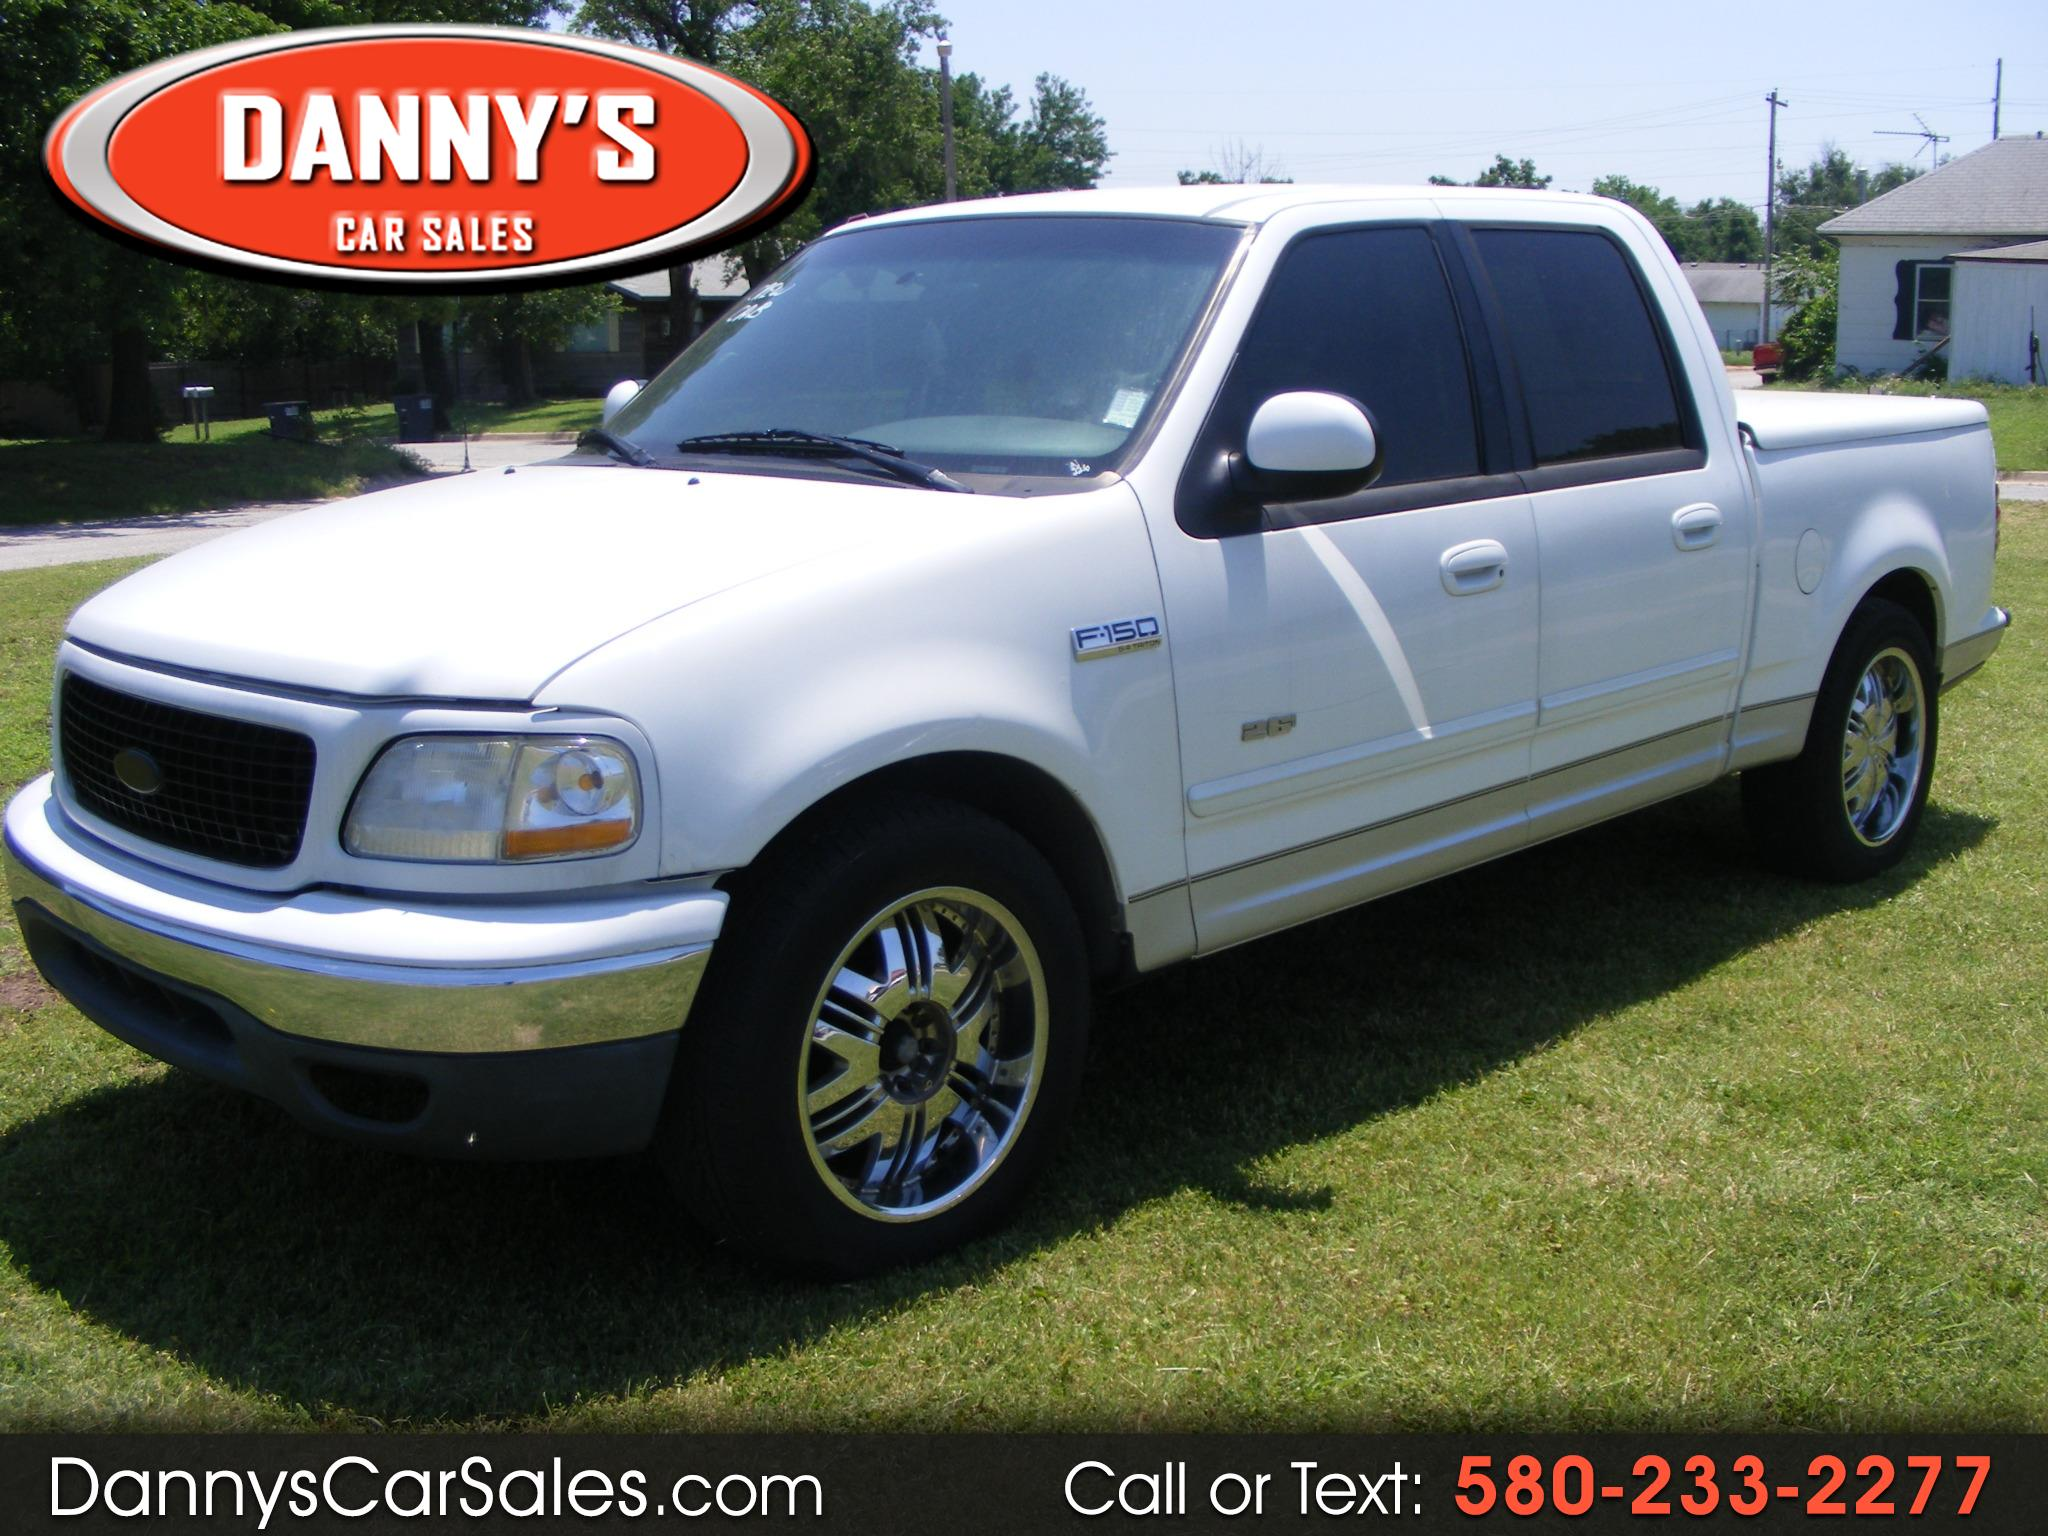 2001 Ford F-150 SuperCrew Crew Cab 139